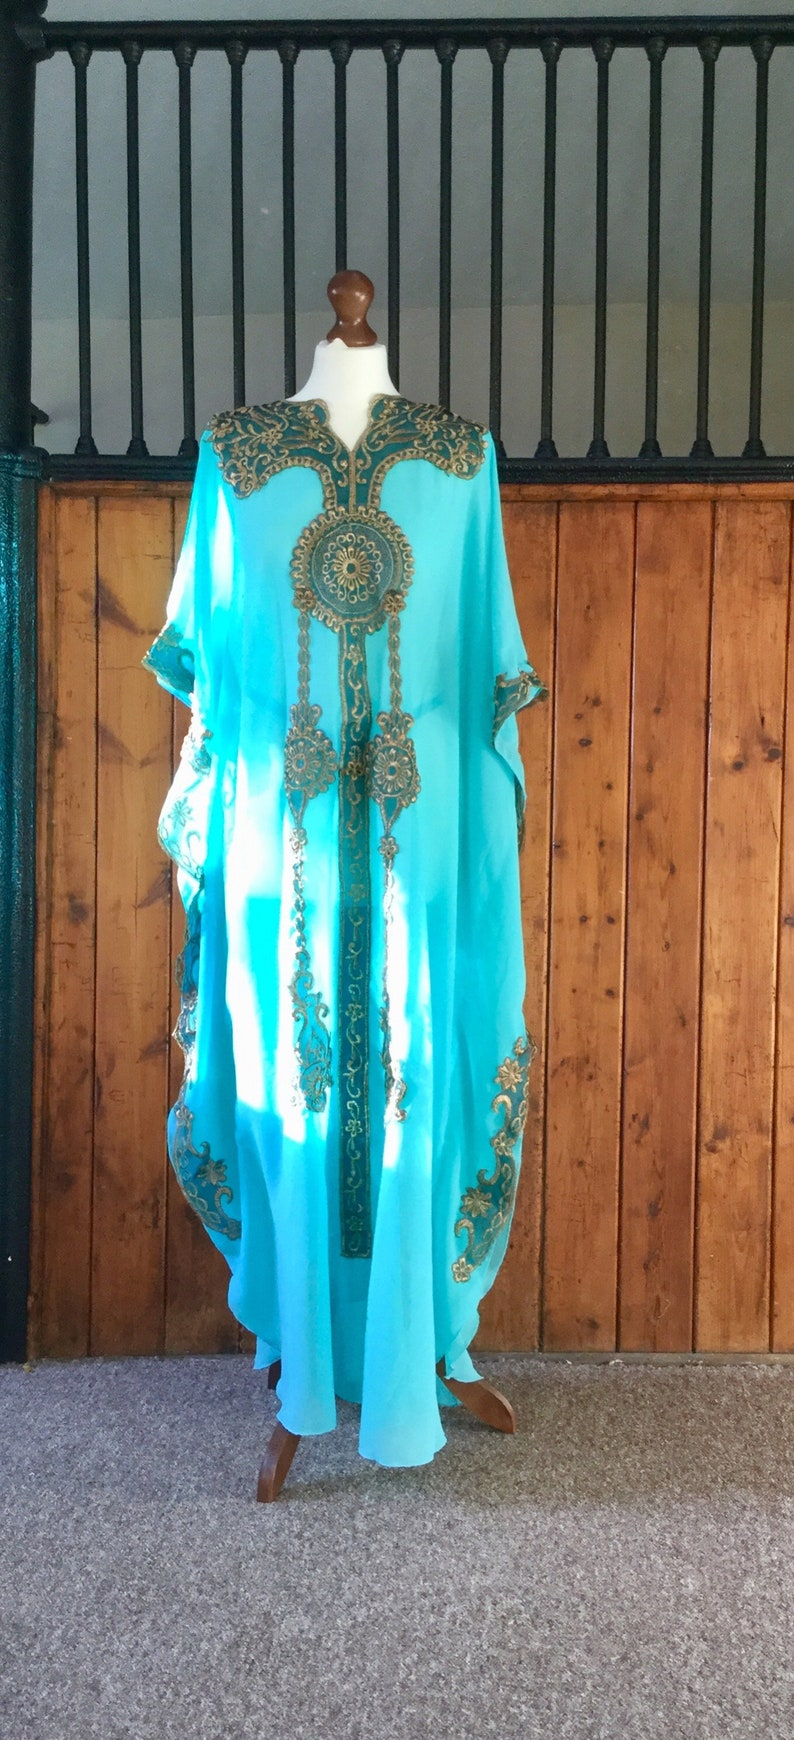 fd03bd7bb400c Moroccan Dubai abaya kaftan turquoise gold lace embroidery | Etsy